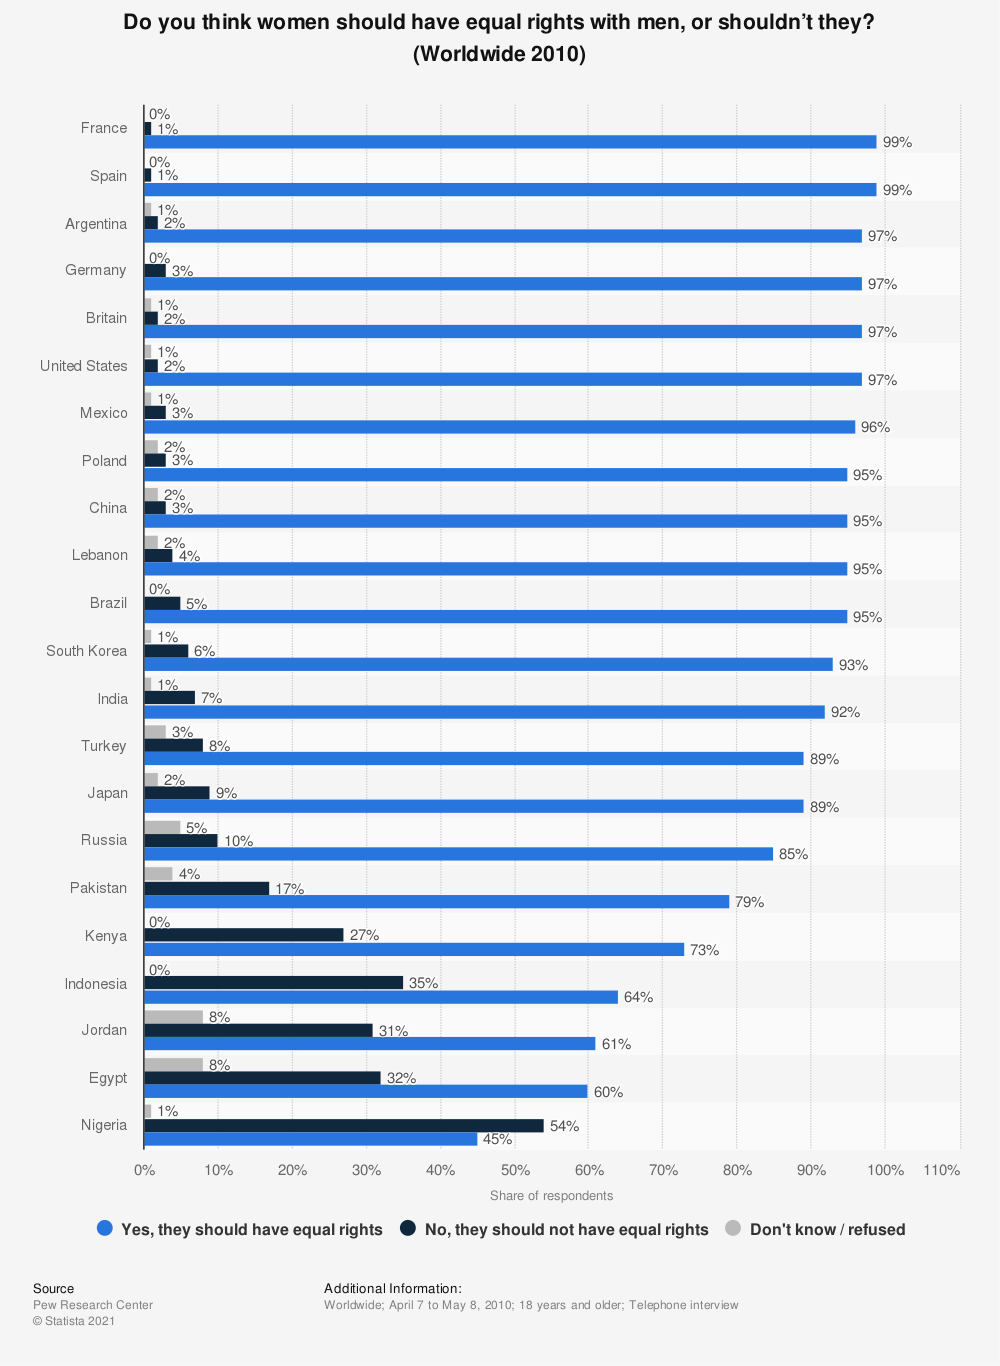 Statistic: Do you think women should have equal rights with men, or shouldn't they? (Worldwide 2010) | Statista